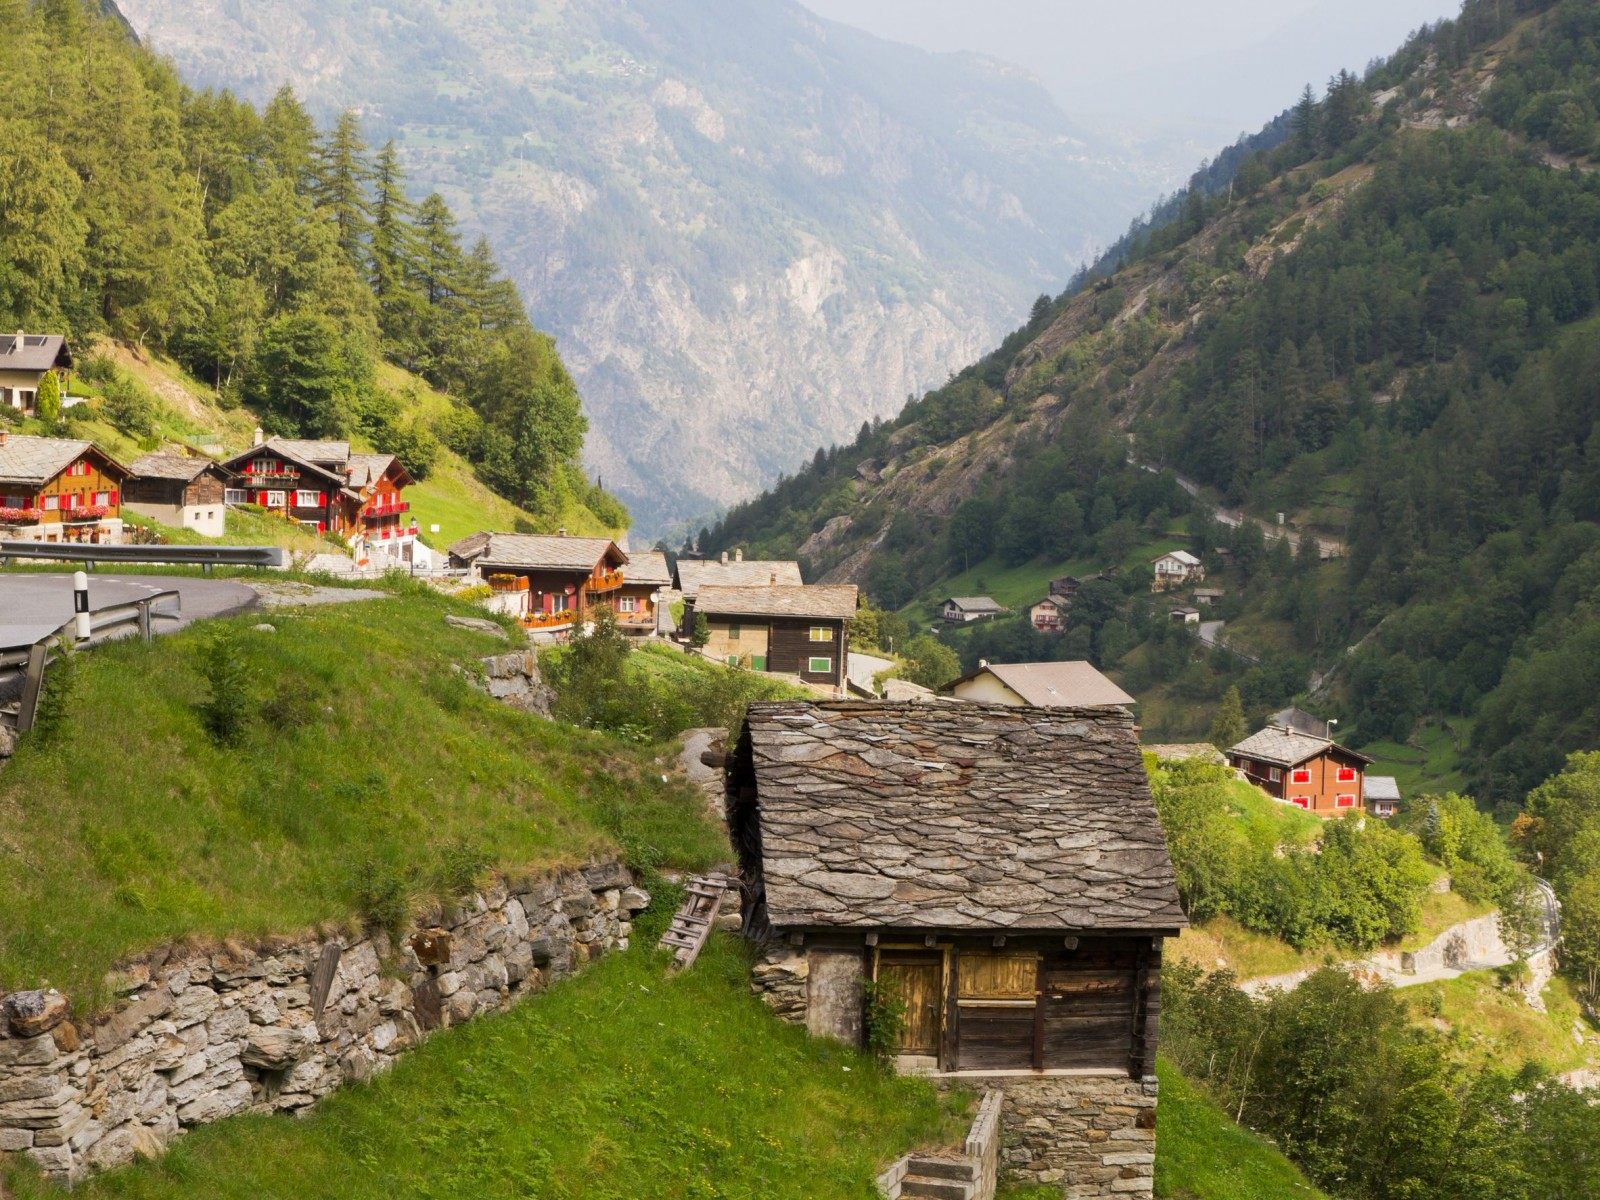 Travel-To-Switzerland-Small-Swiss-Village-Settlement-Saas-Balen-of-Wooden-Slate-Roof-Houses-in-Saas-Valley-Canton-Valais-Switzerland-1600x1200[1]